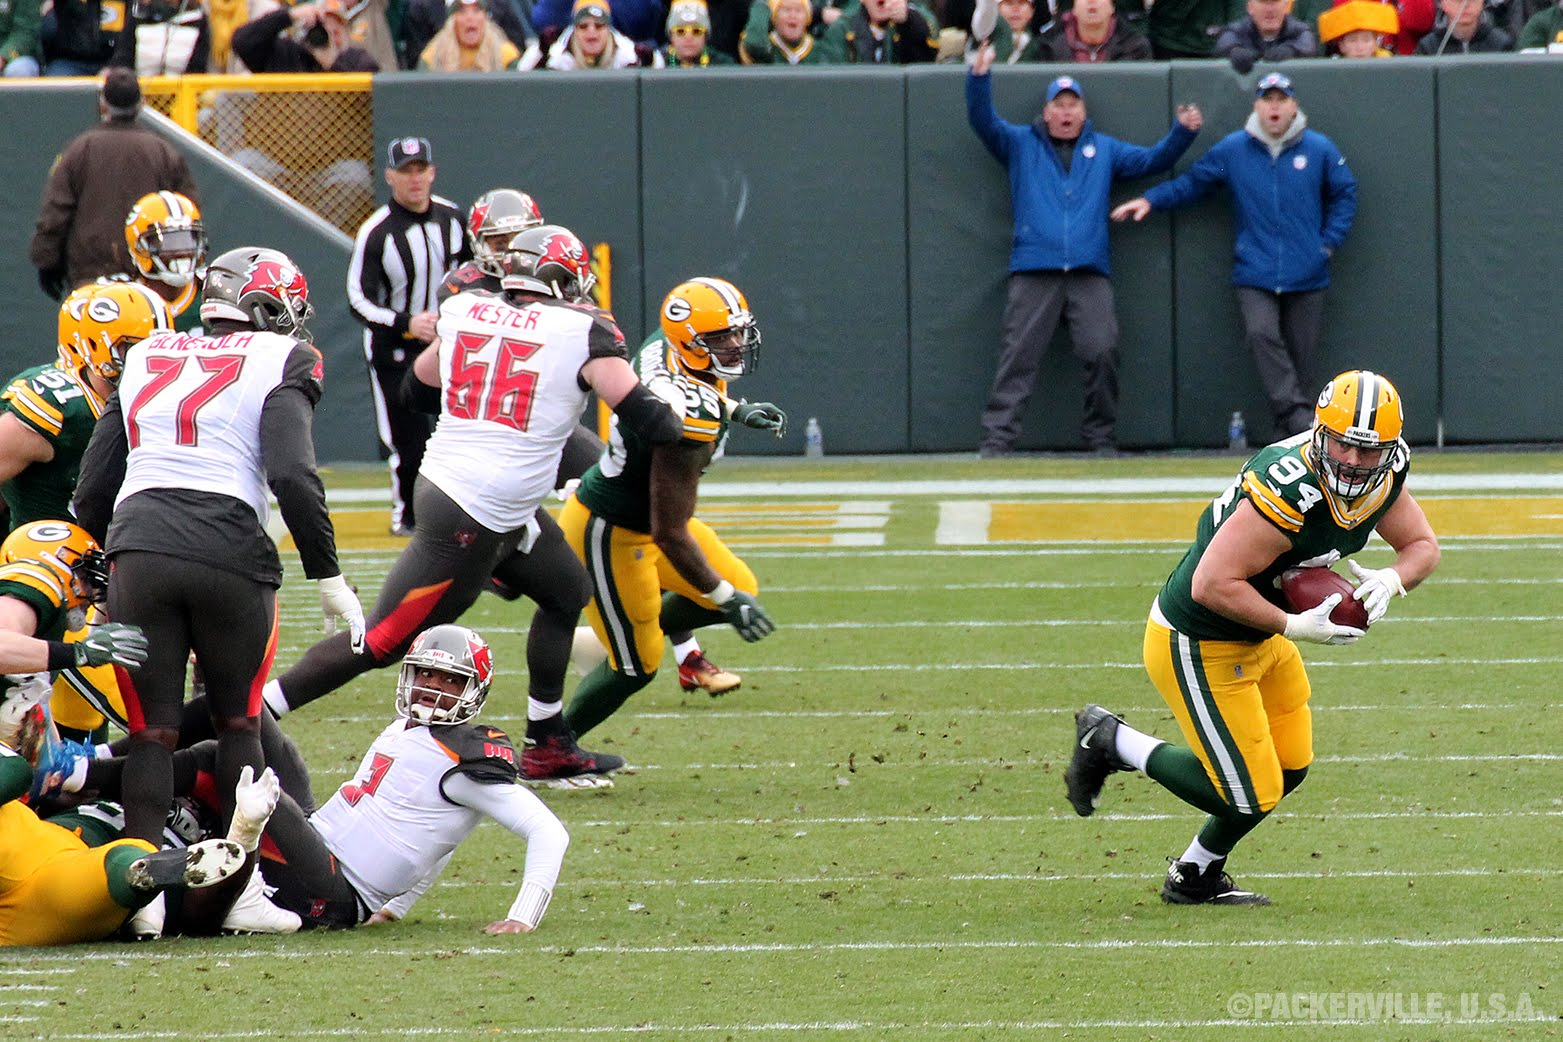 de dean lowry 94 has the ball here and is off on his 62 yard scamper to the north end zone for his first nfl touchdown